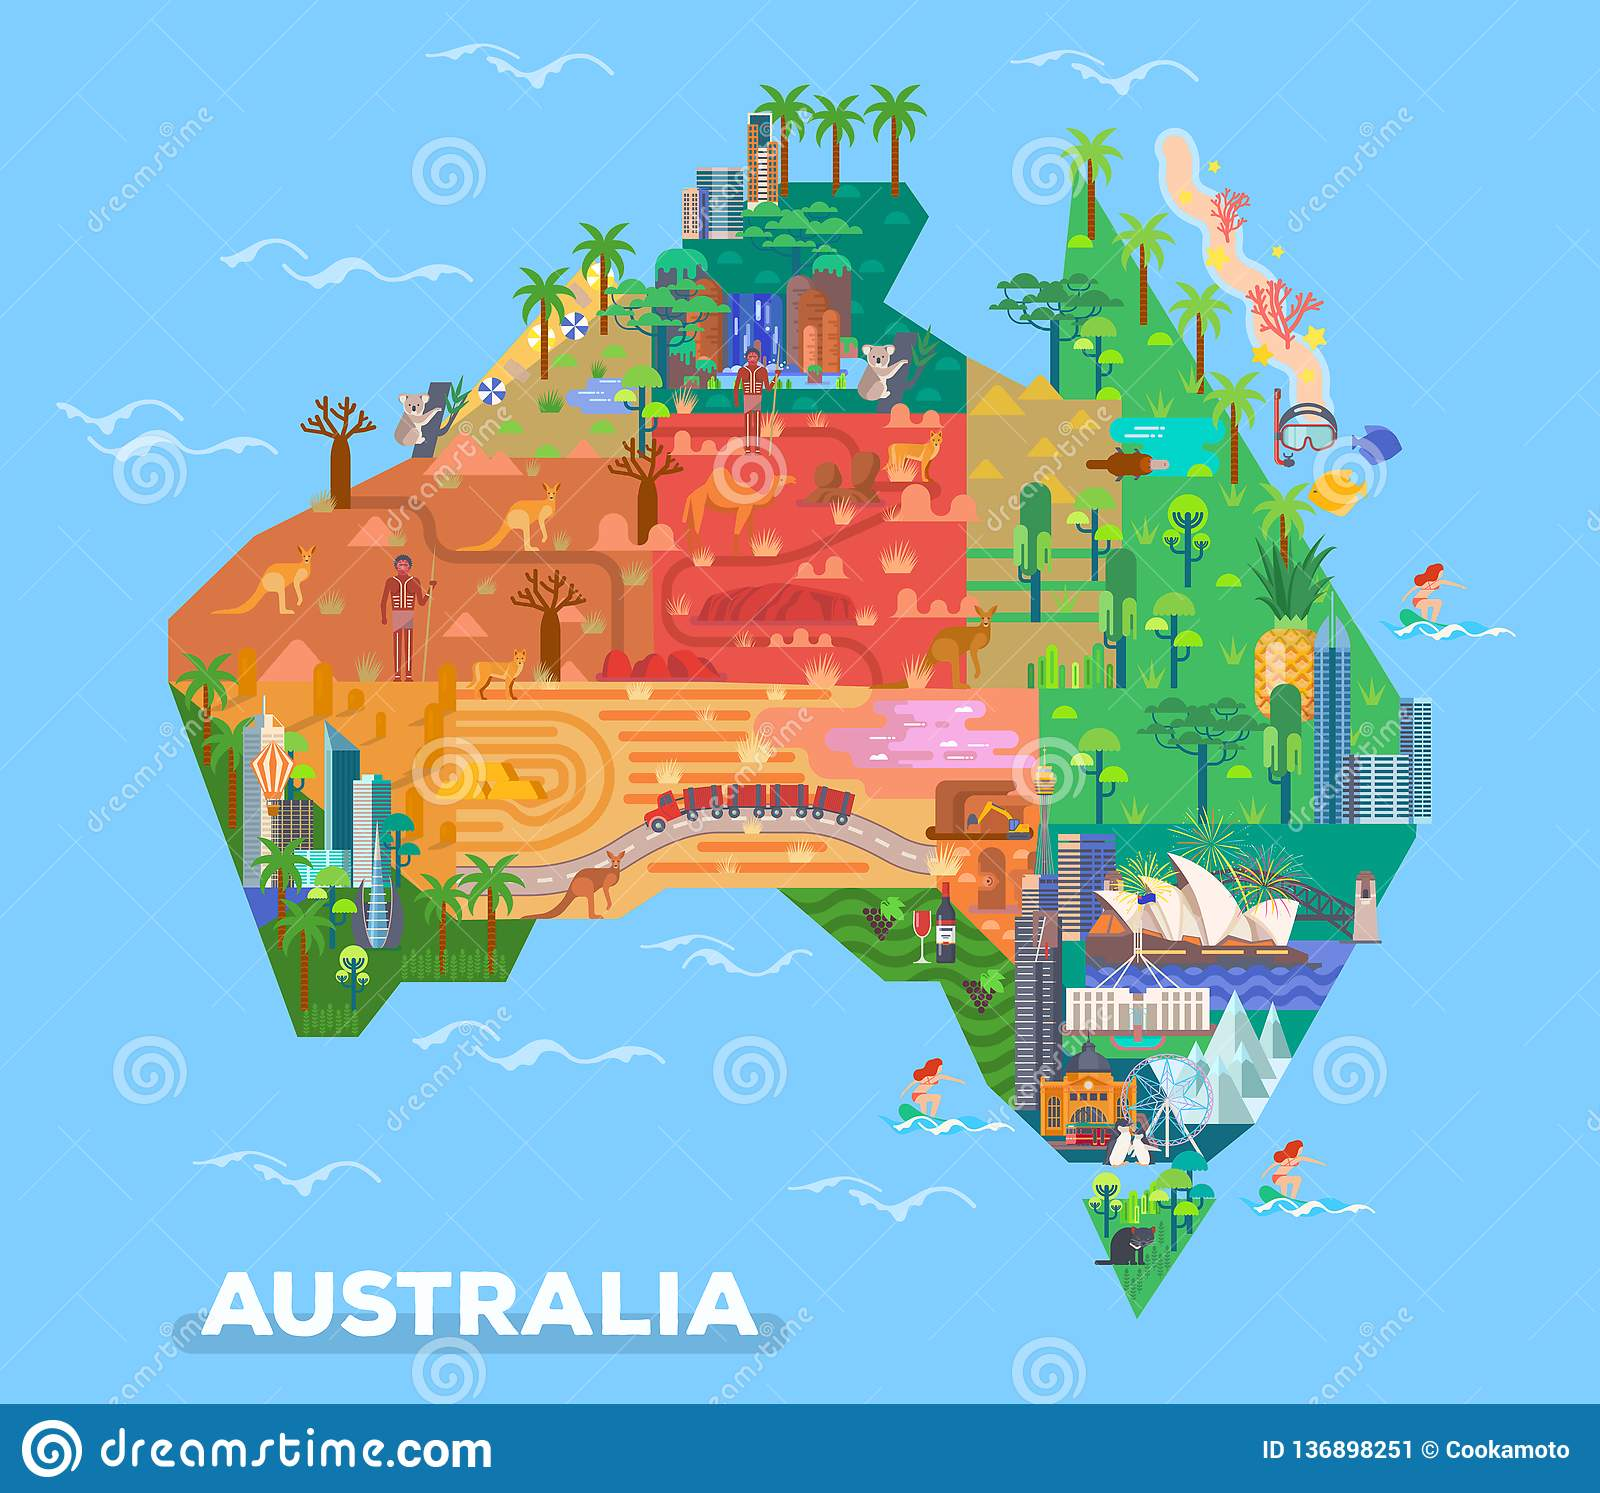 Australia Map Kalgoorlie.Map Of Australia With Landmarks Of Architecture Stock Vector